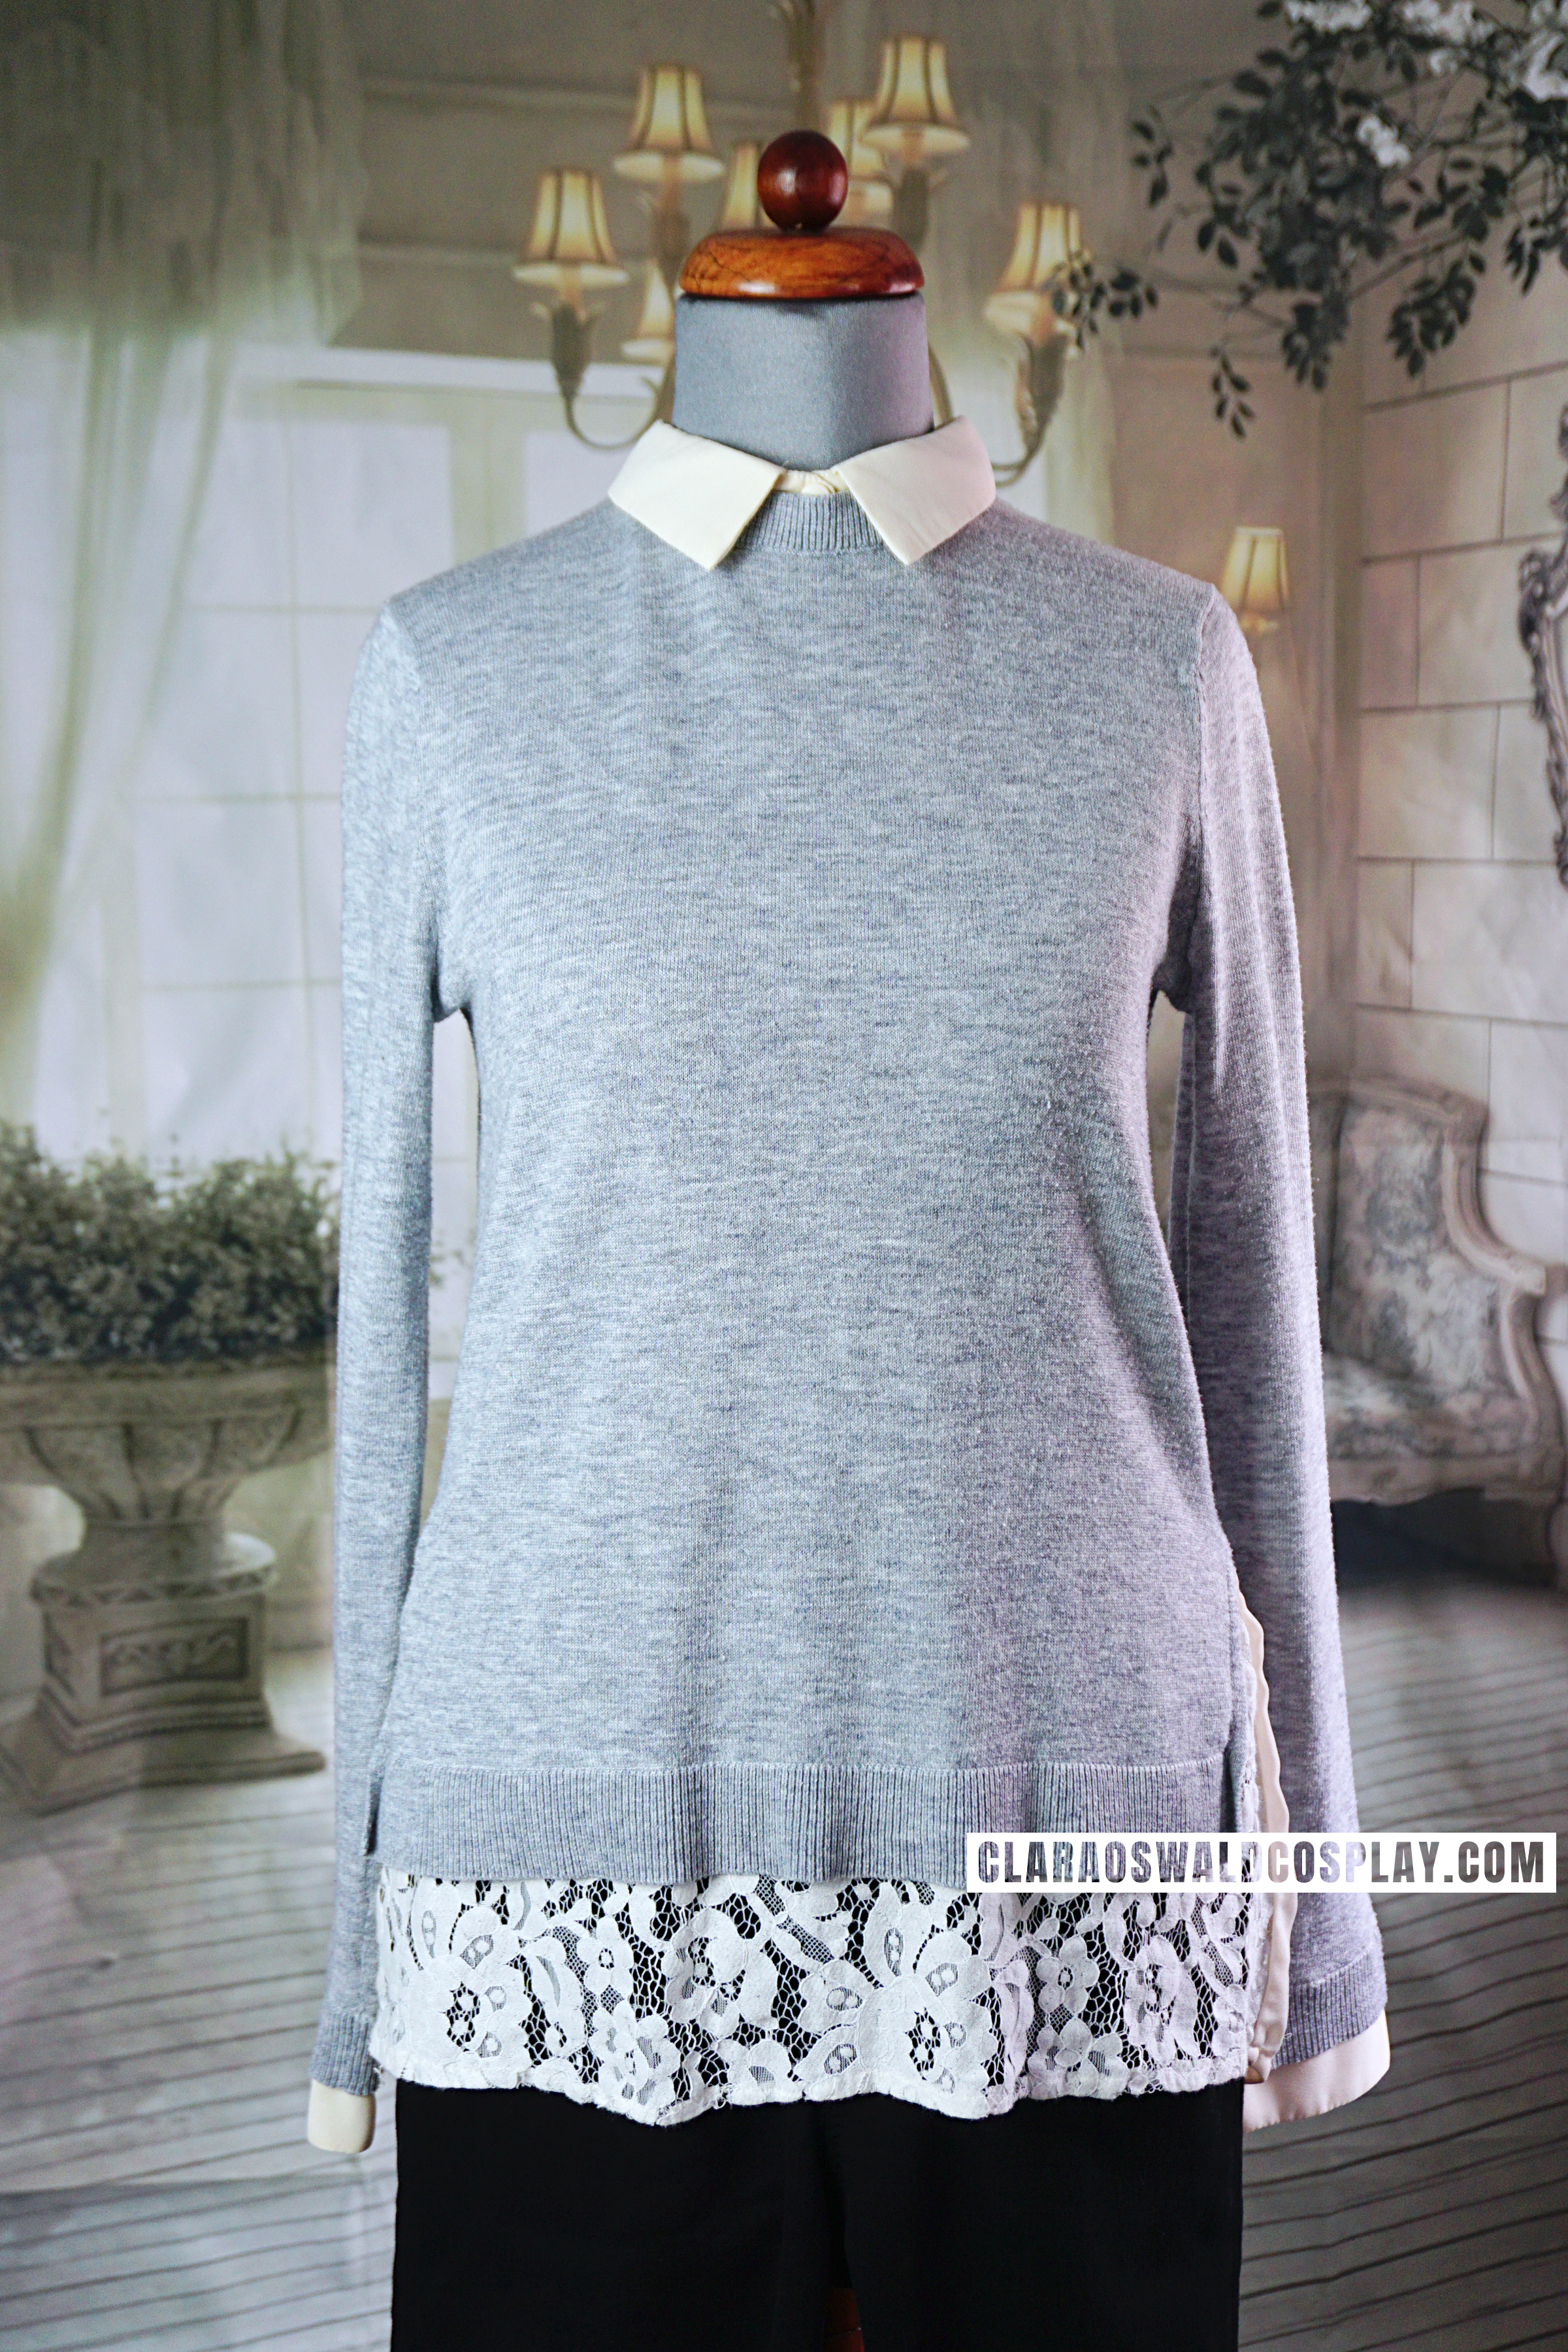 A close-up of the Topshop Hybrid Jumper worn by Clara Oswald